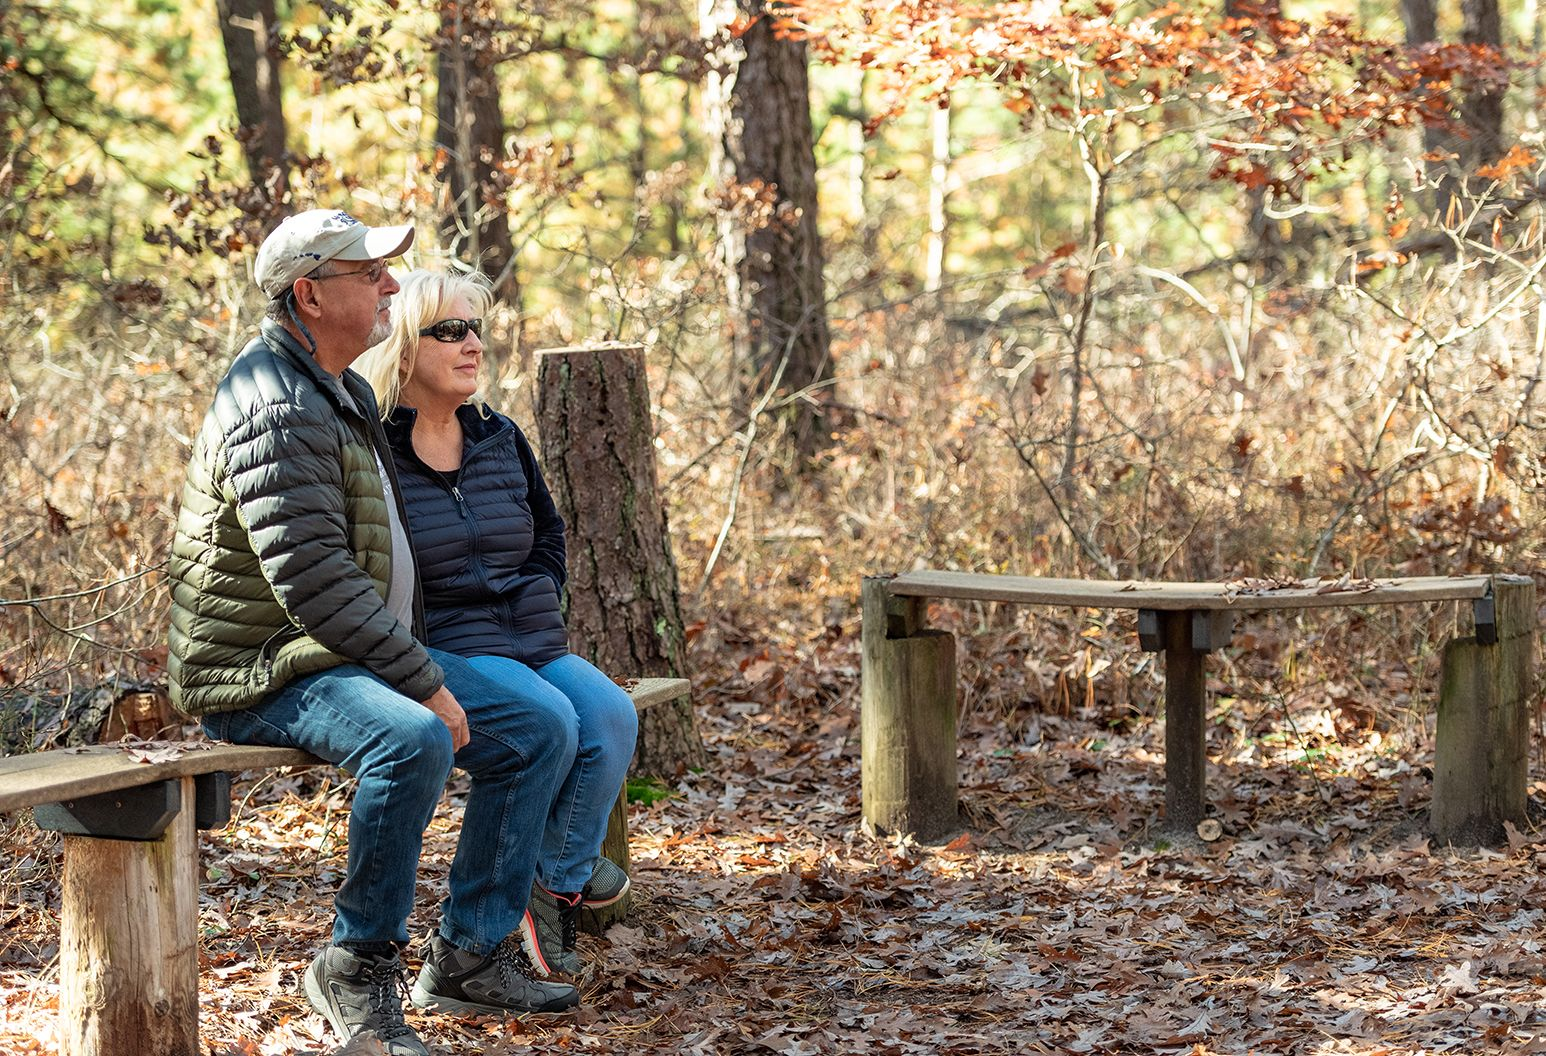 A married couple in their 60's sits on a bench outside and enjoys the quaint beauty of nature.